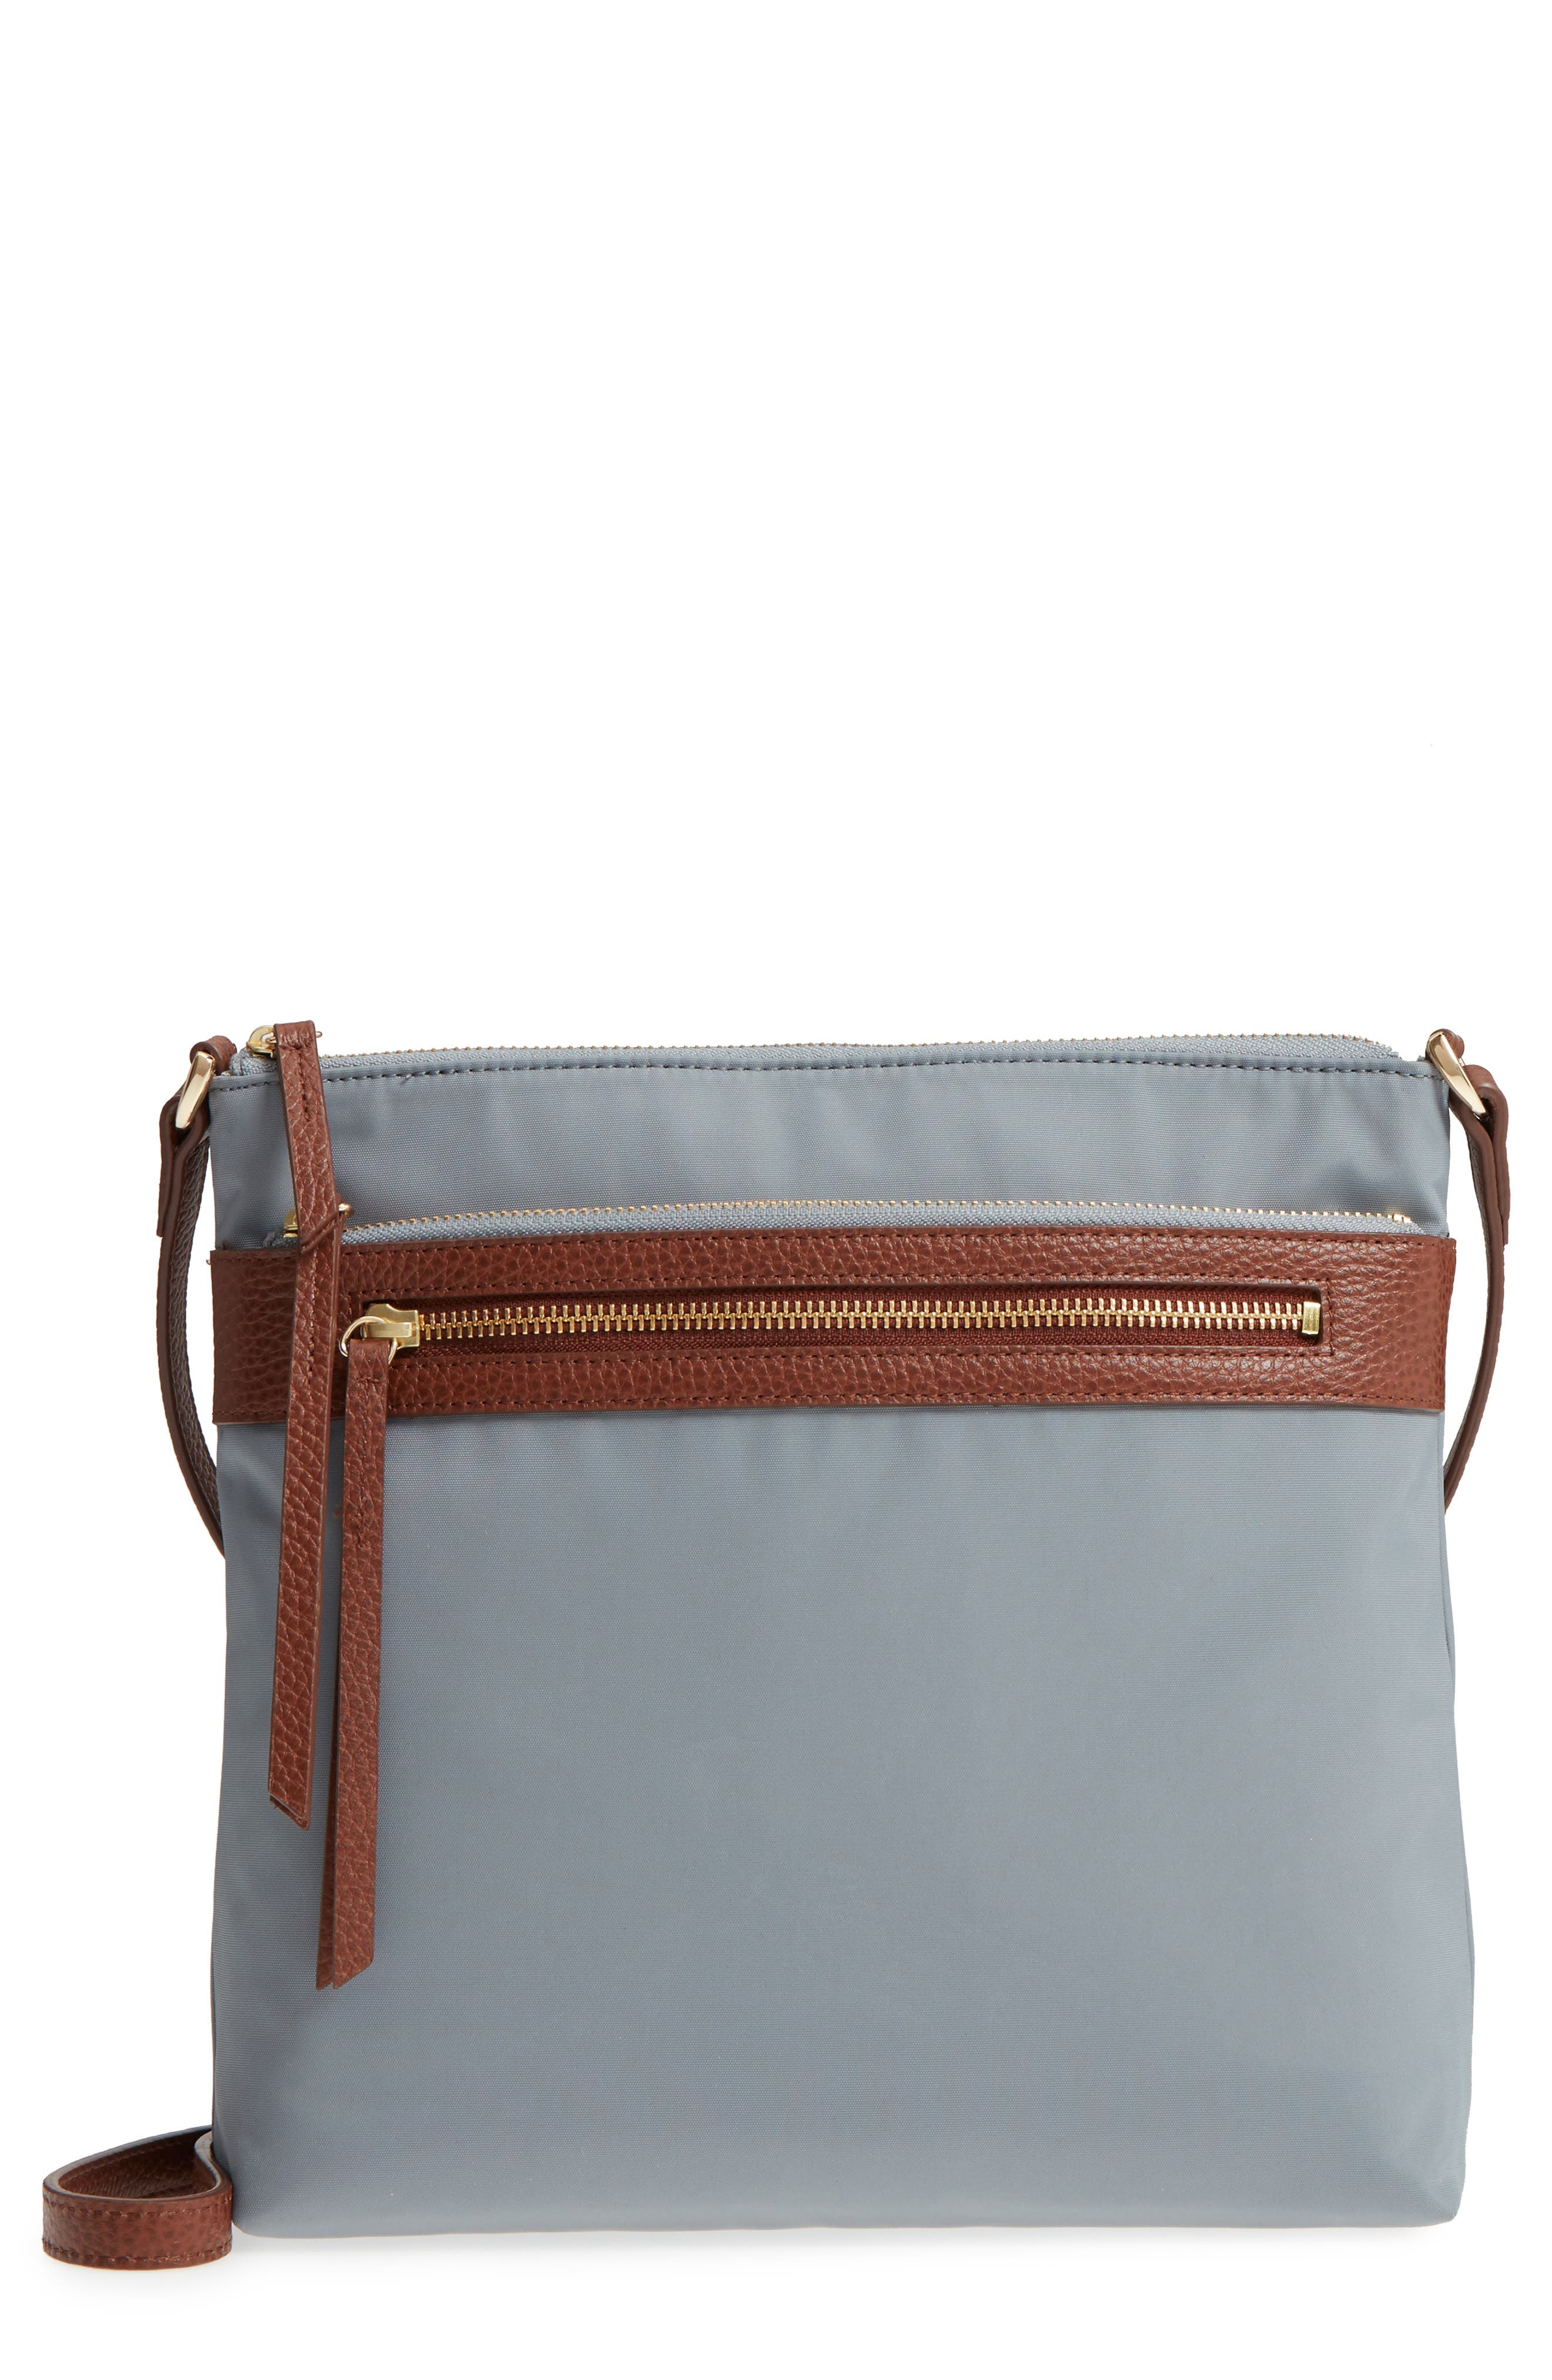 Nordstrom Kaison Nylon Crossbody Bag